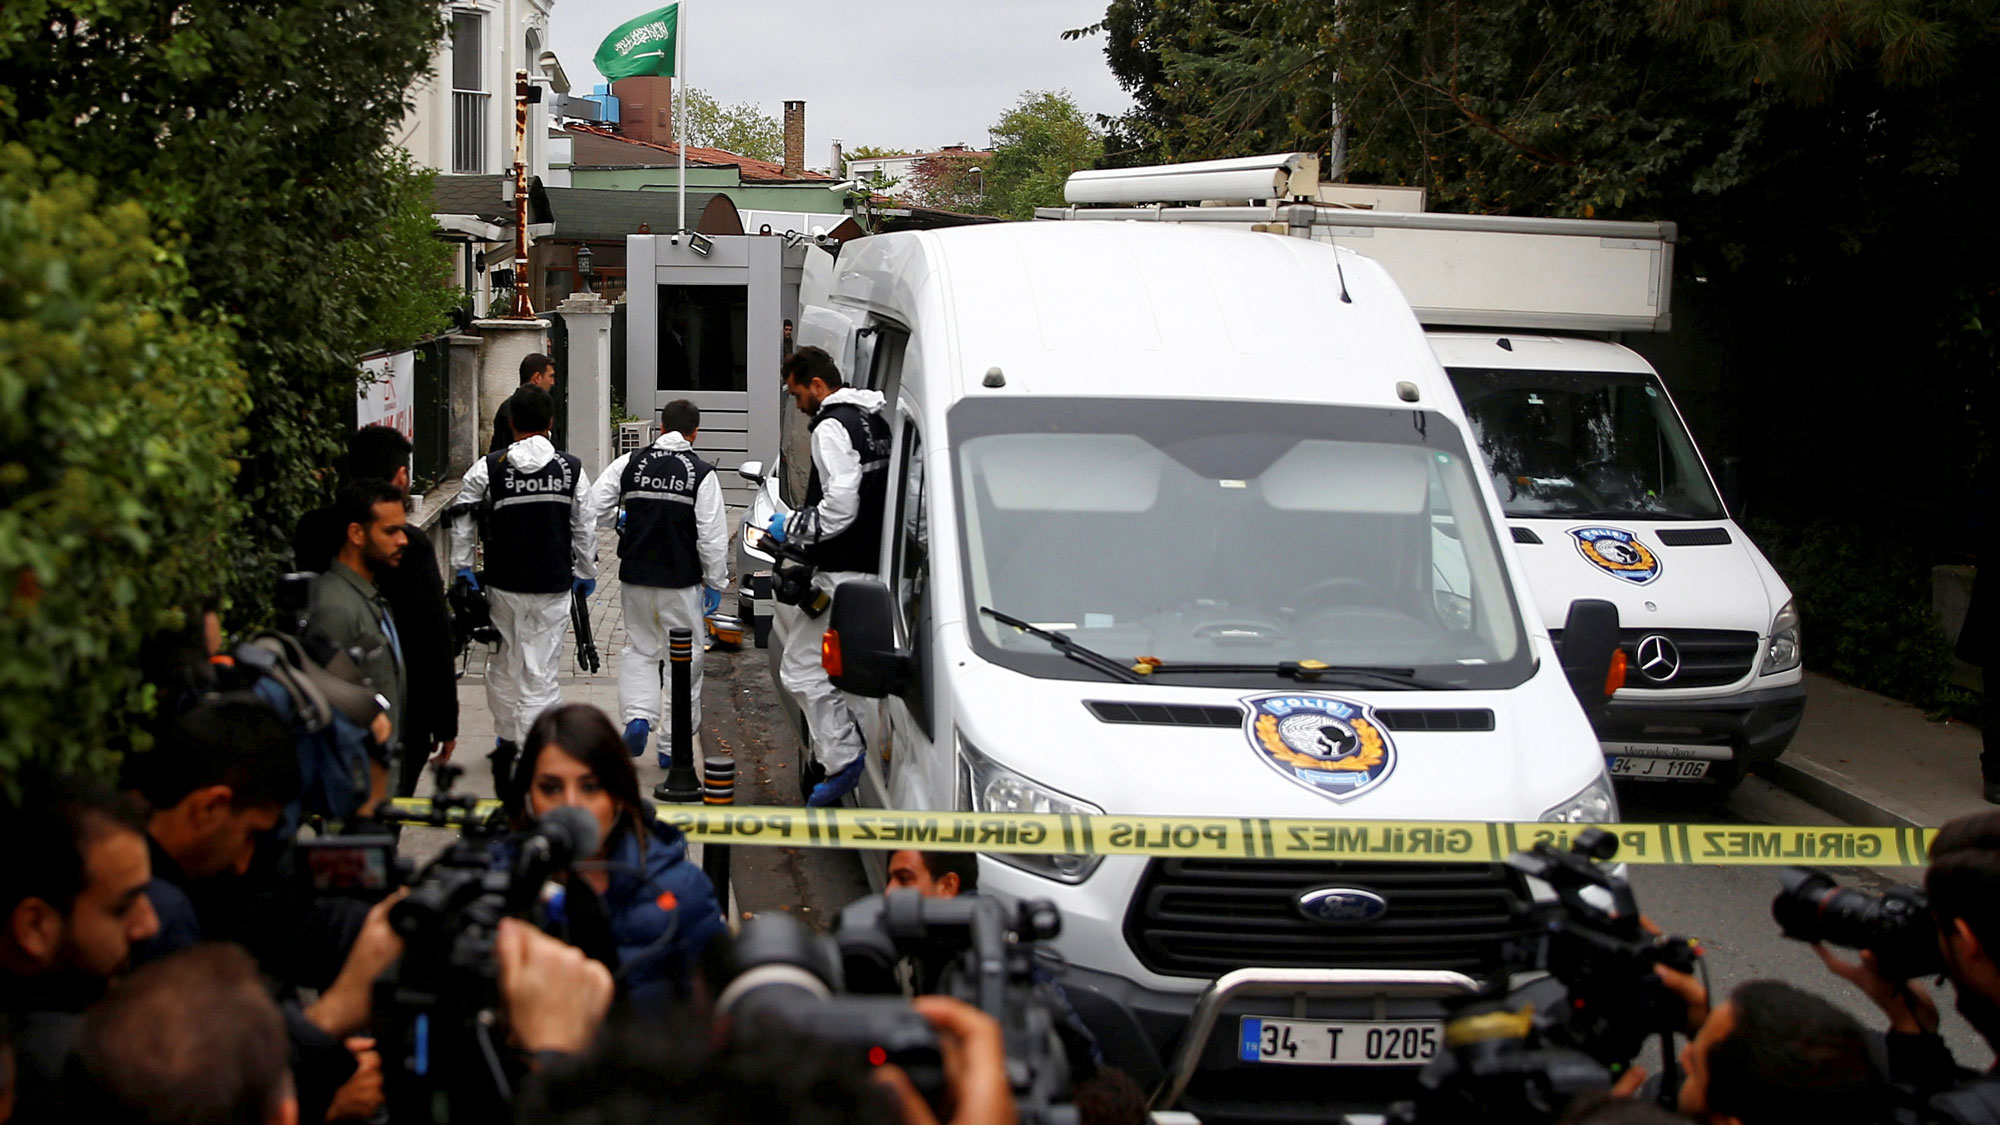 Turkish forensic officials arrive clad in white uniforms and a white van to the residence of Saudi Arabia's Consul General Mohammad al-Otaibi in Istanbul, Turkey.